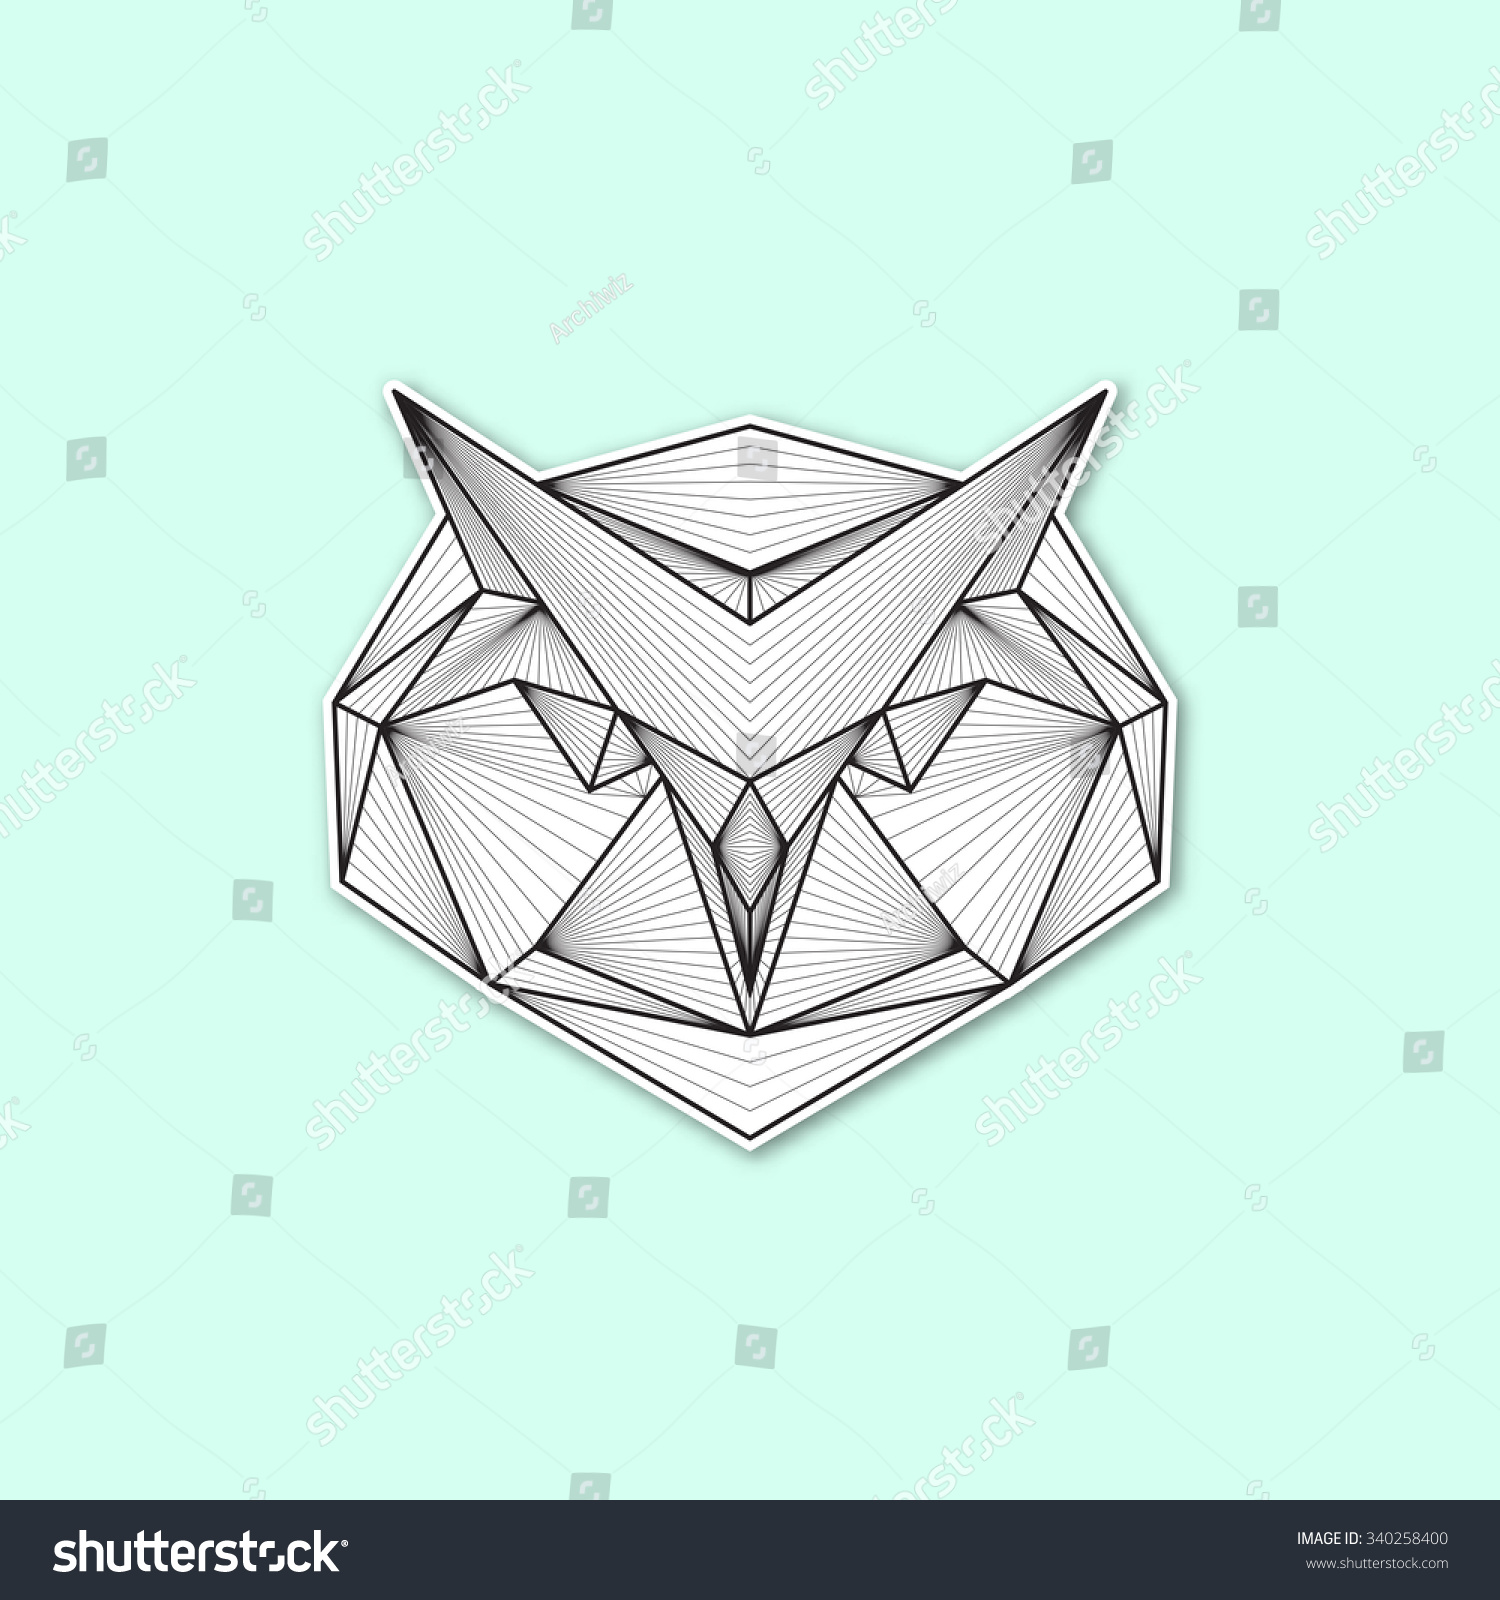 Vector Geometric Illustration Owl Head Stock Vector ... - photo#49